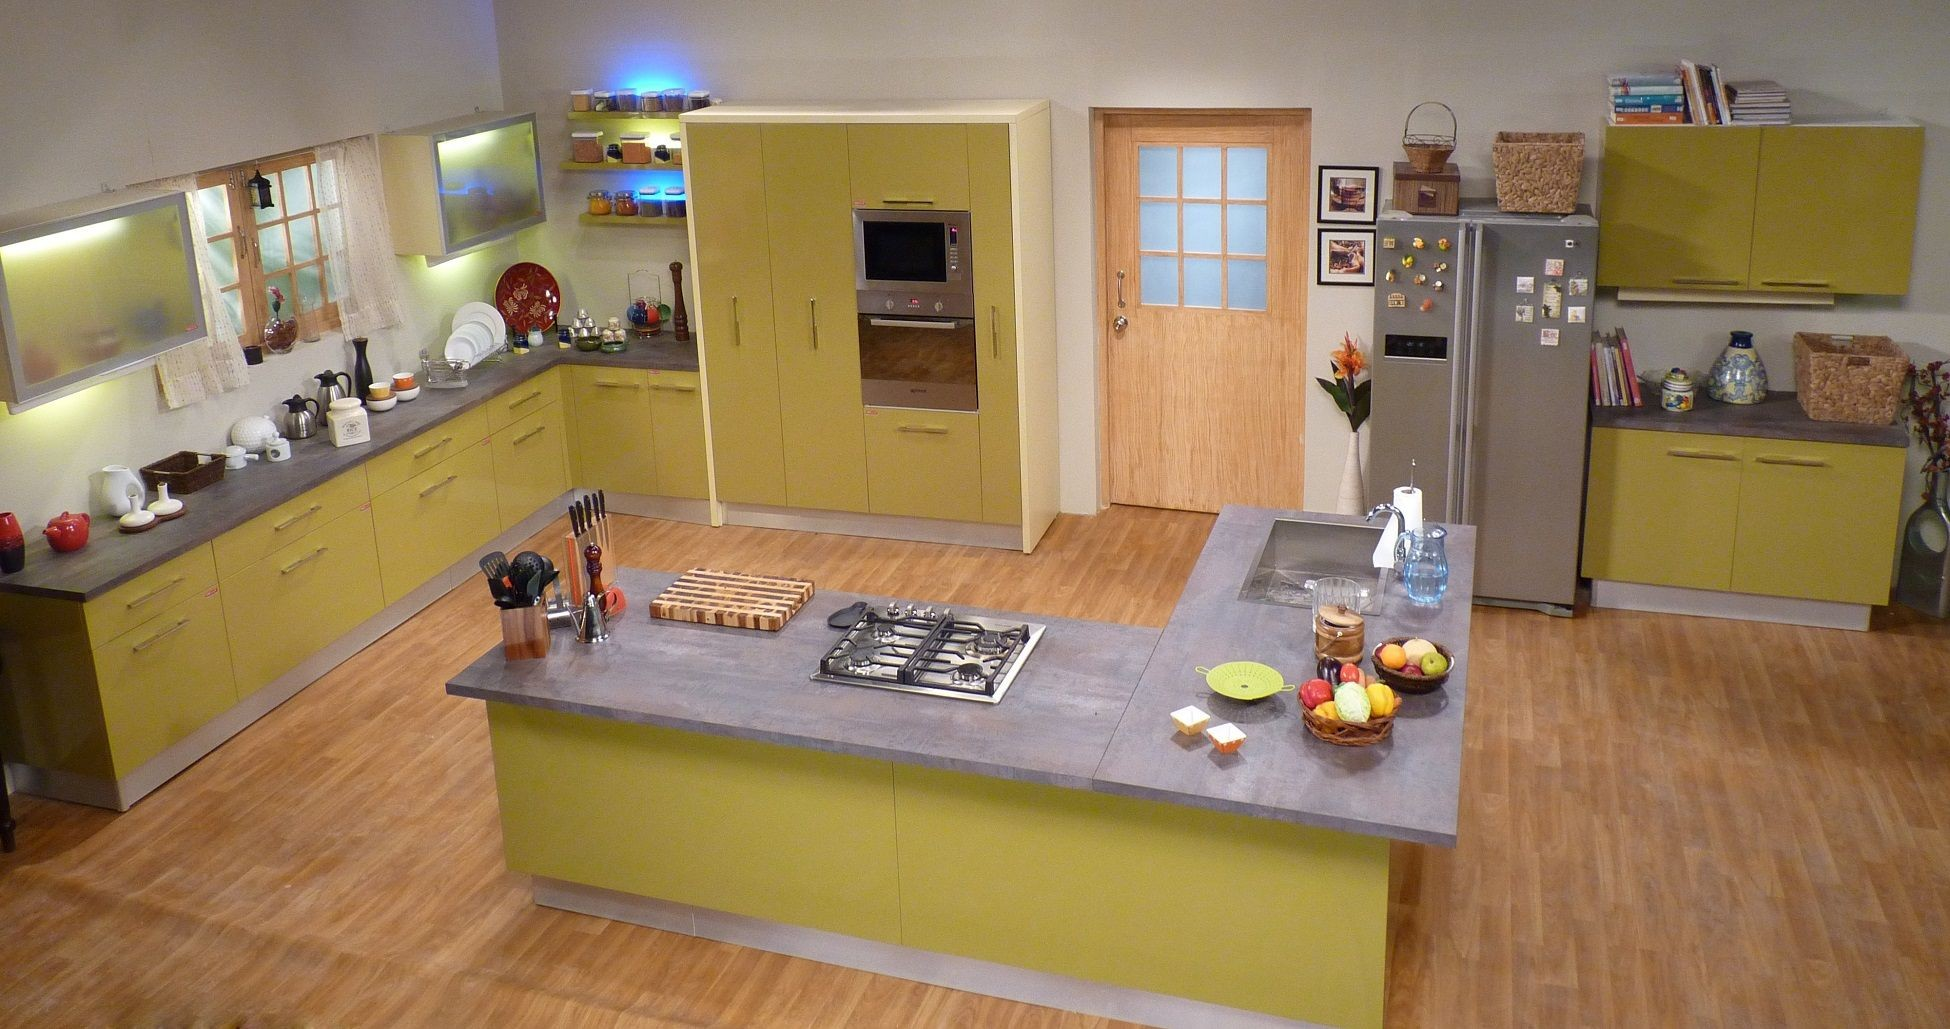 Average Cost To Install Kitchen Cabinets